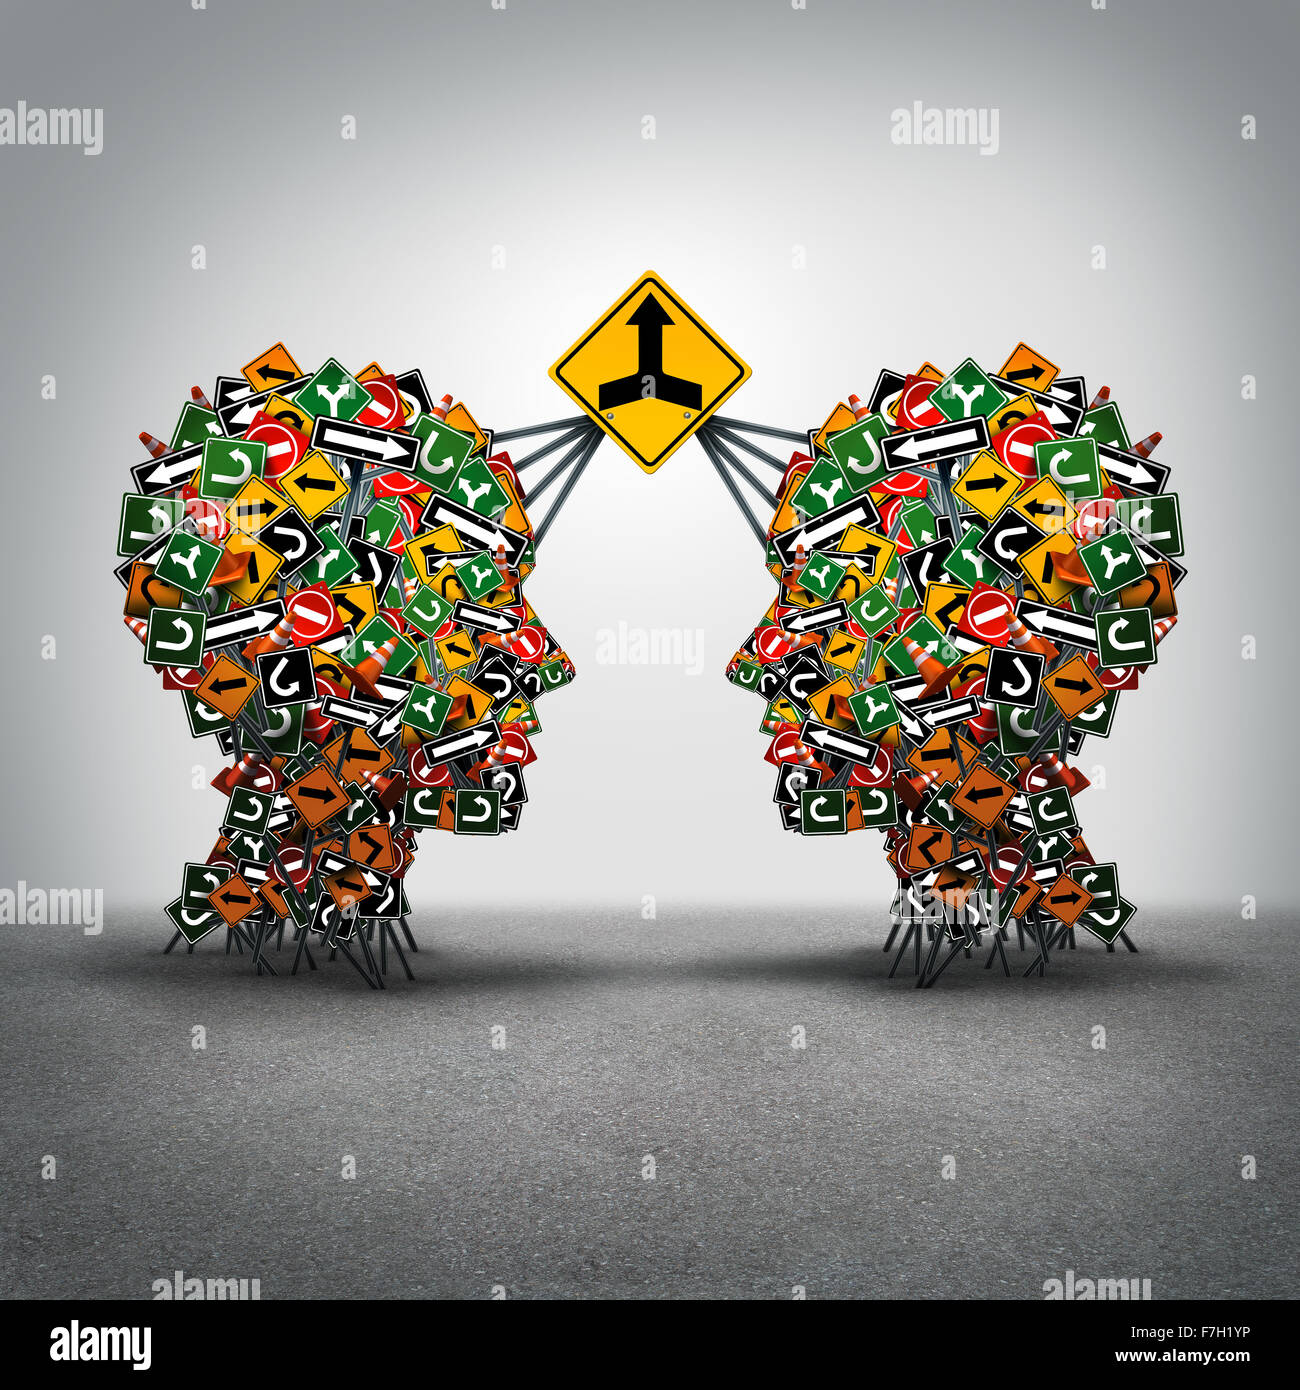 Agreement business concept as two groups og traffic signs shaped as agreement business concept as two groups og traffic signs shaped as a human head connected together by a big signage with a merg platinumwayz